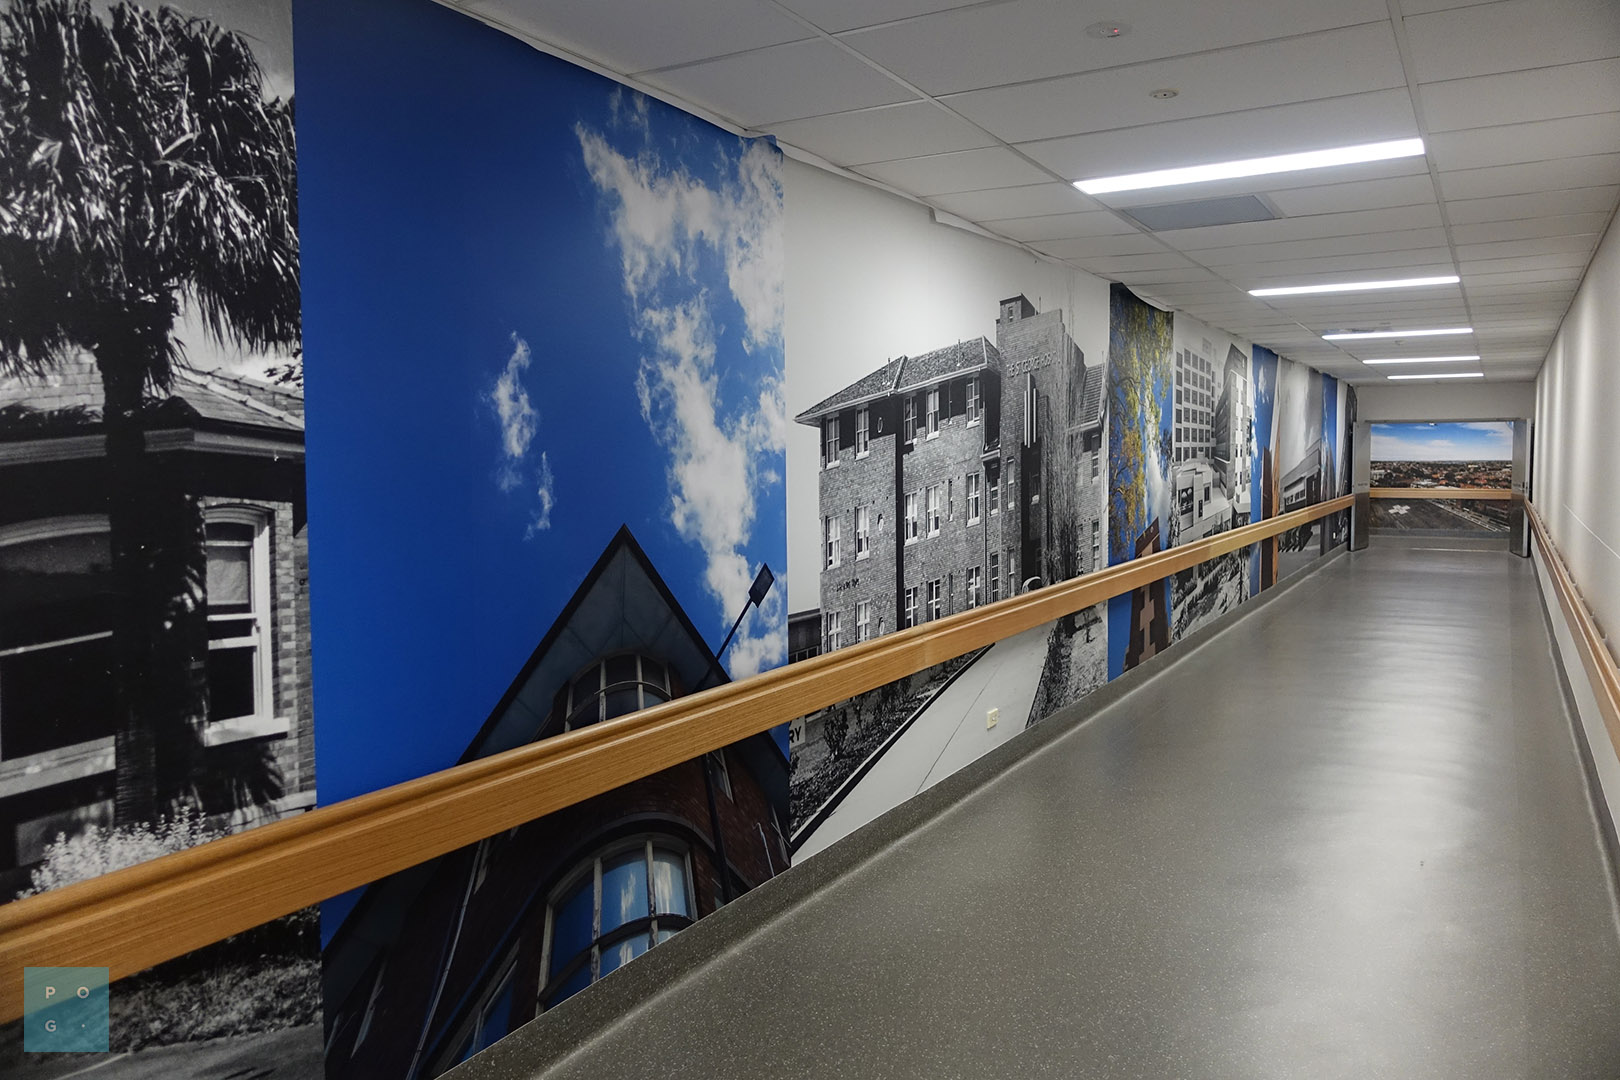 Hospital hallway with custom printed wallpaper panels with the hospital building imagery.